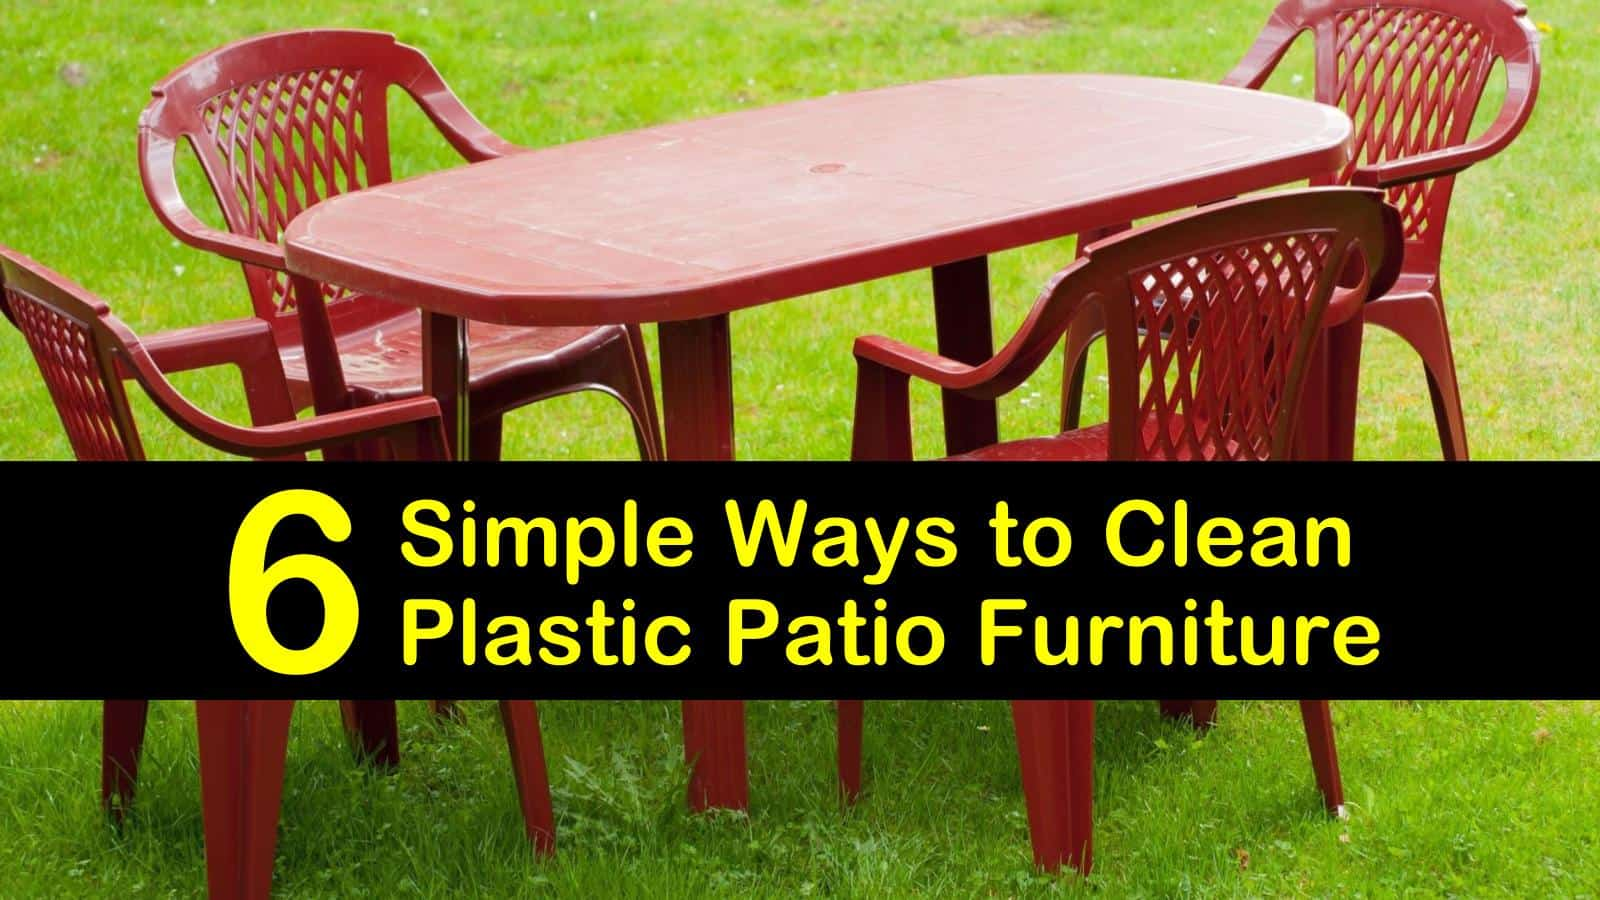 6 Simple Ways To Clean Plastic Patio Furniture